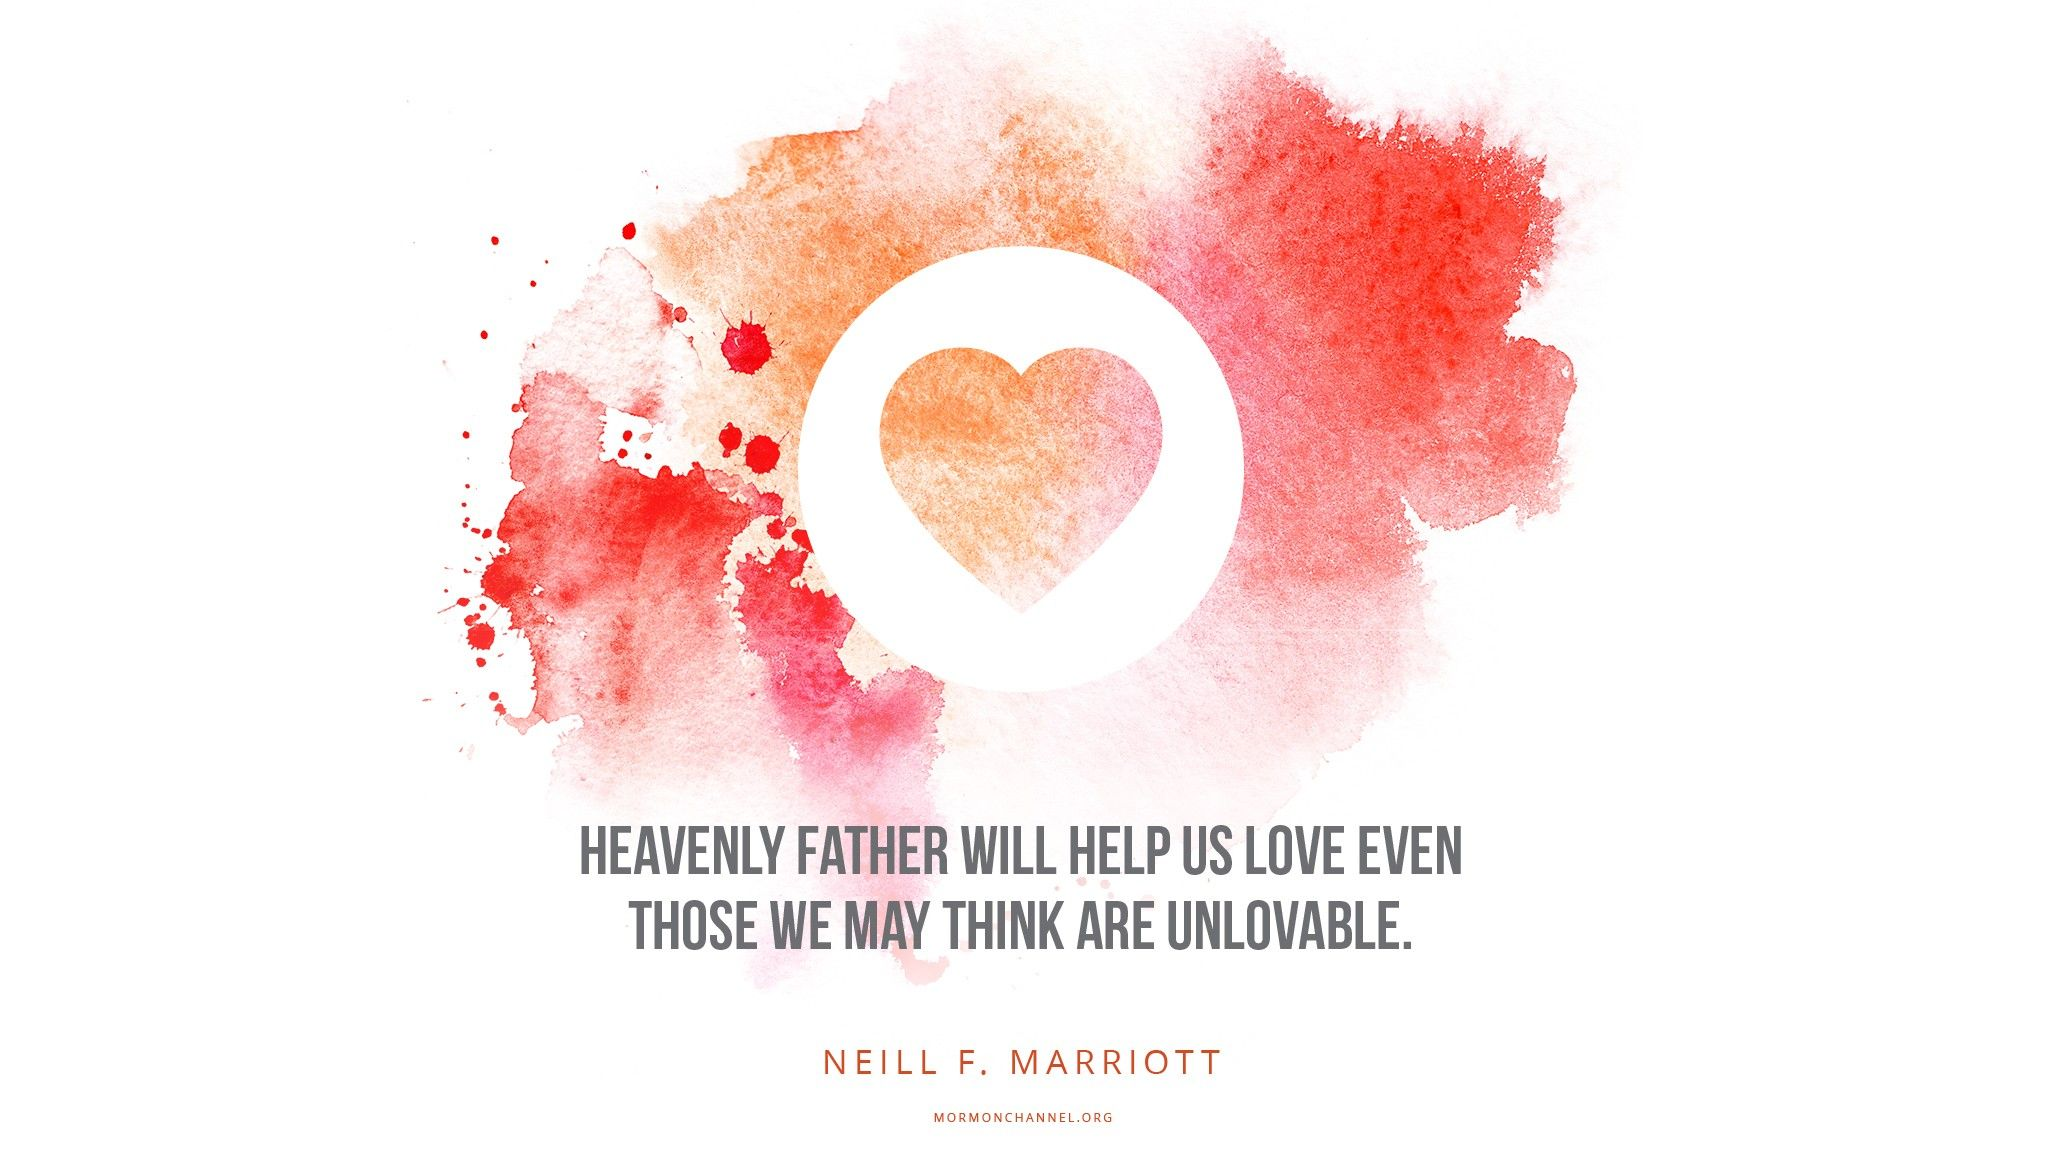 """""""Heavenly Father will help us love even those we may think are unlovable.""""—Sister Neill F. Marriott, """"Abiding in God and Repairing the Breach"""""""